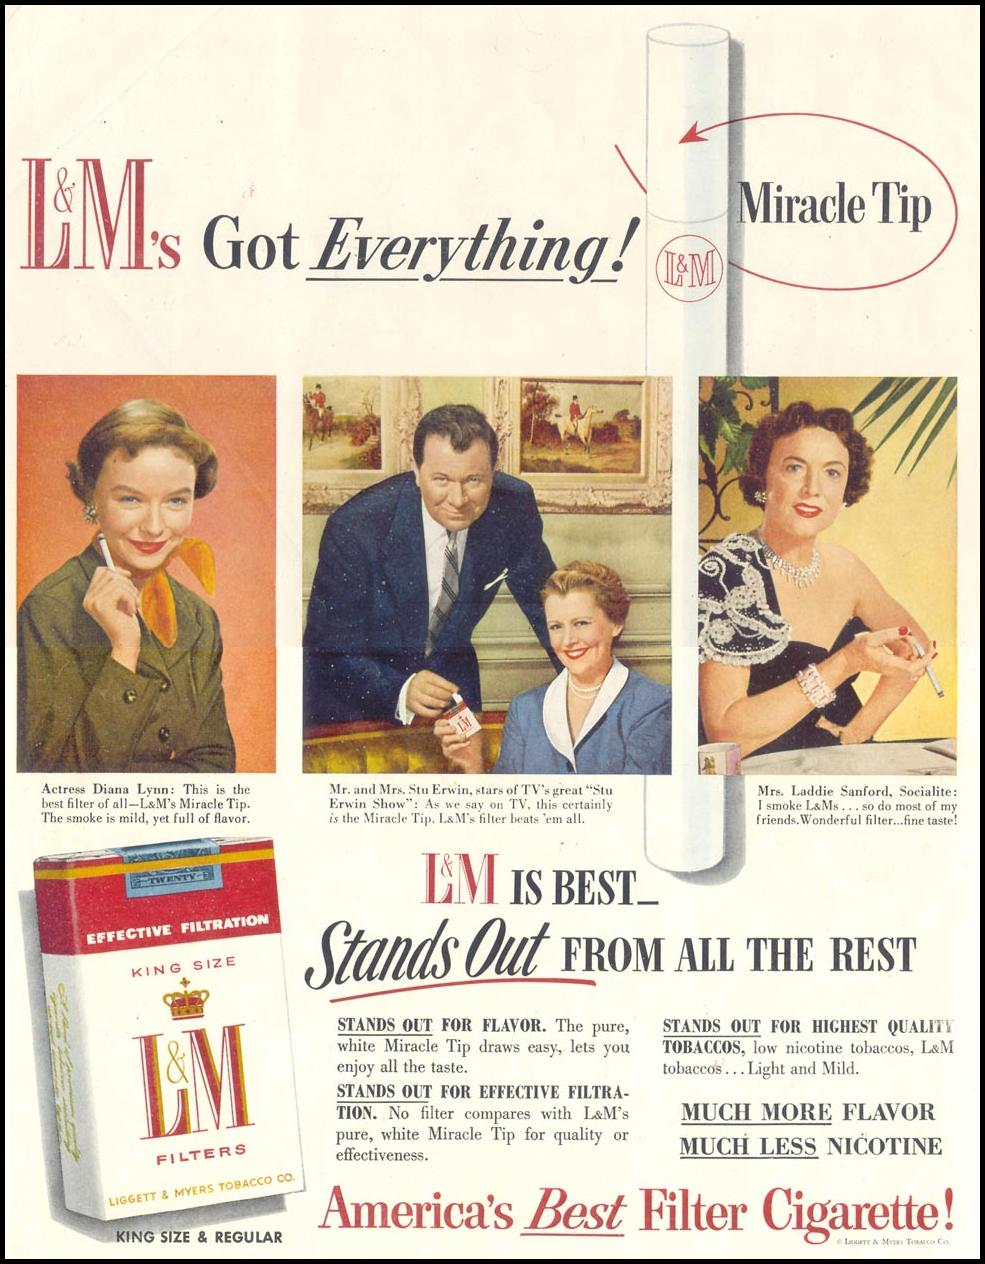 L & M CIGARETTES SATURDAY EVENING POST 01/08/1955 INSIDE FRONT